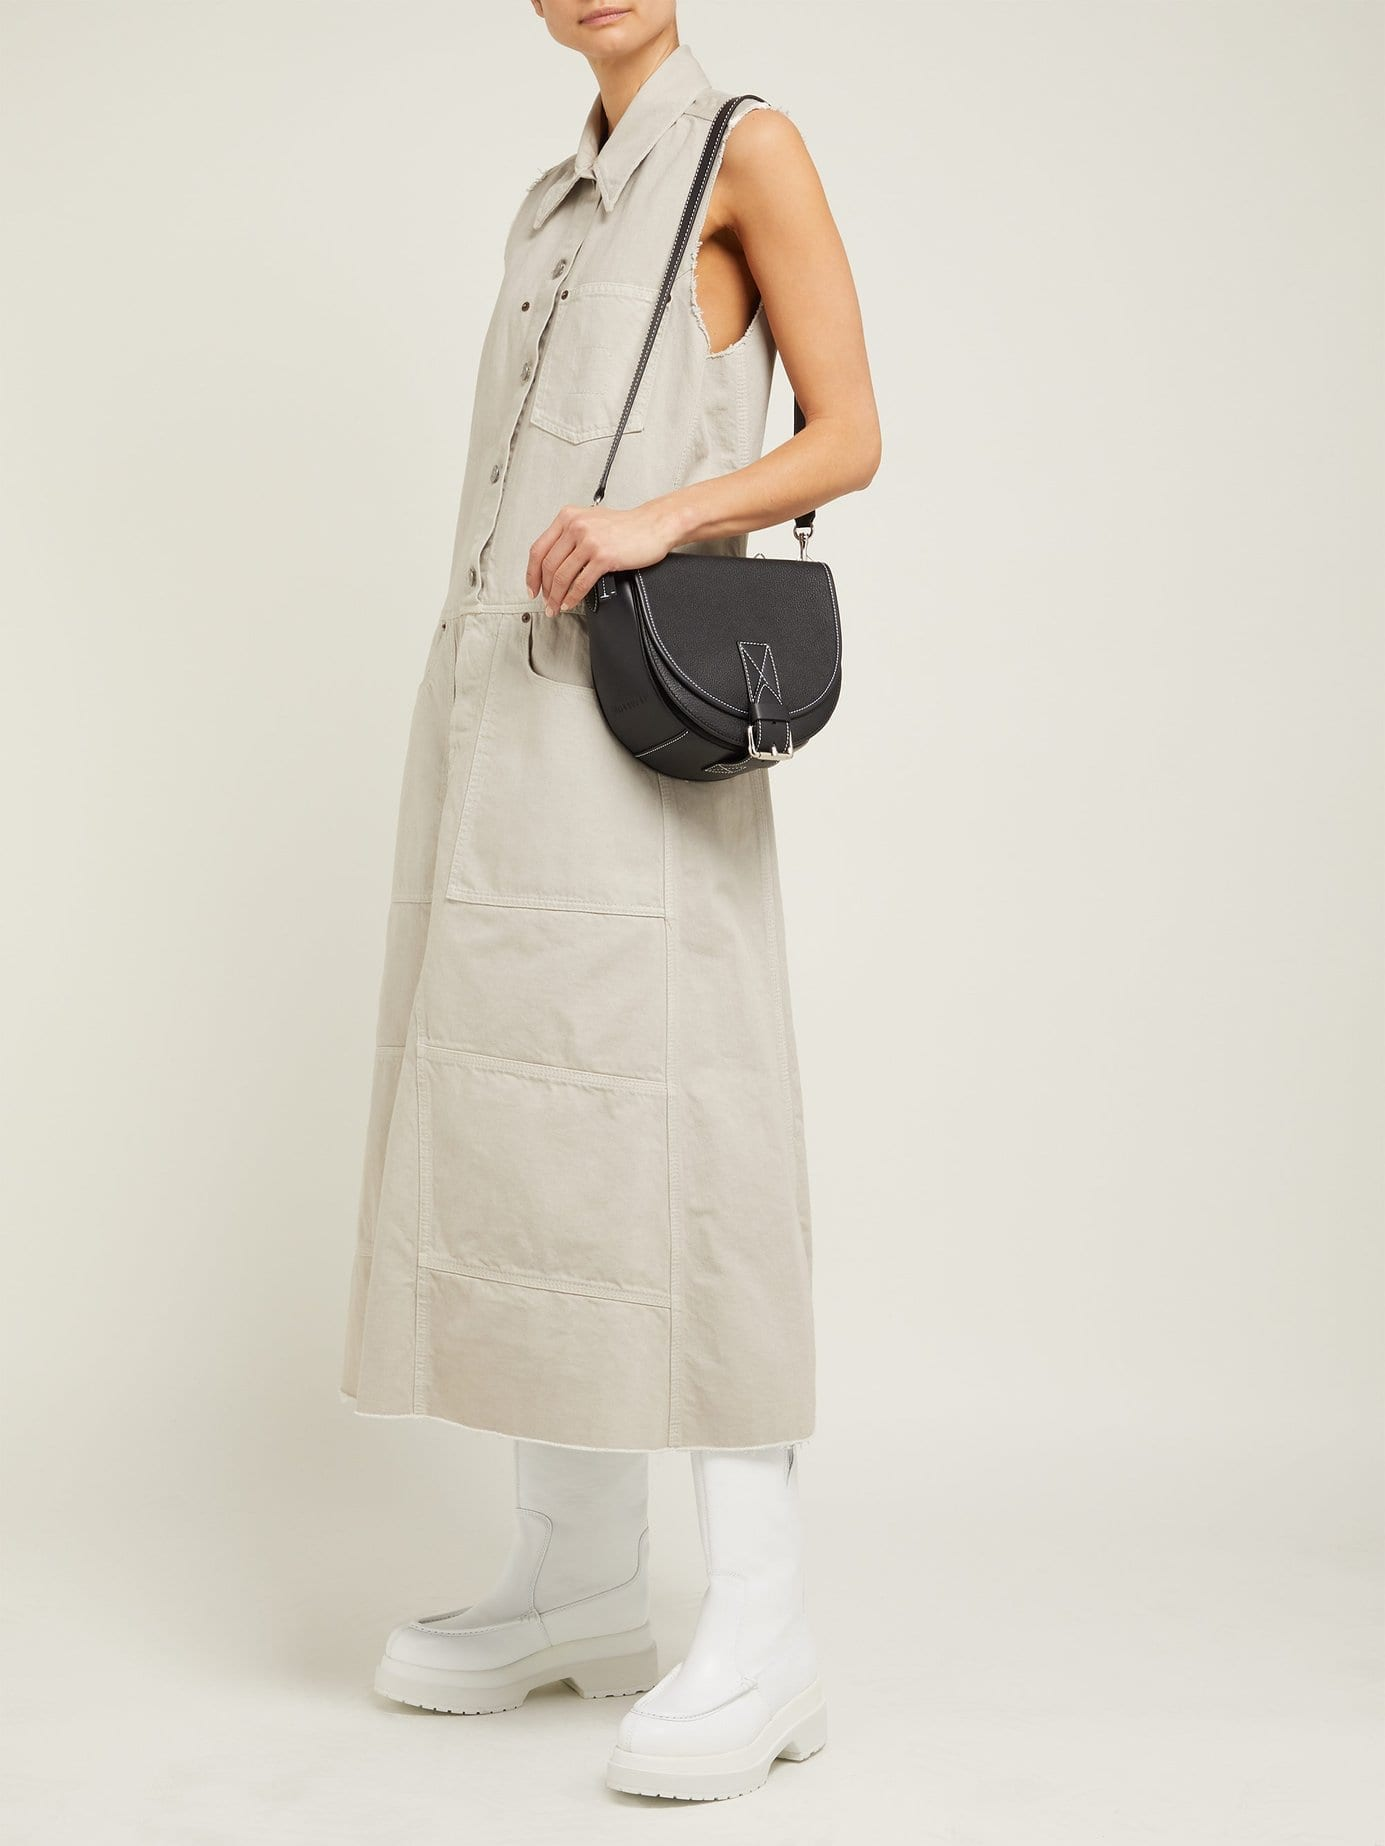 MM6 MAISON MARGIELA Button-down Denim Midi Beige Dress